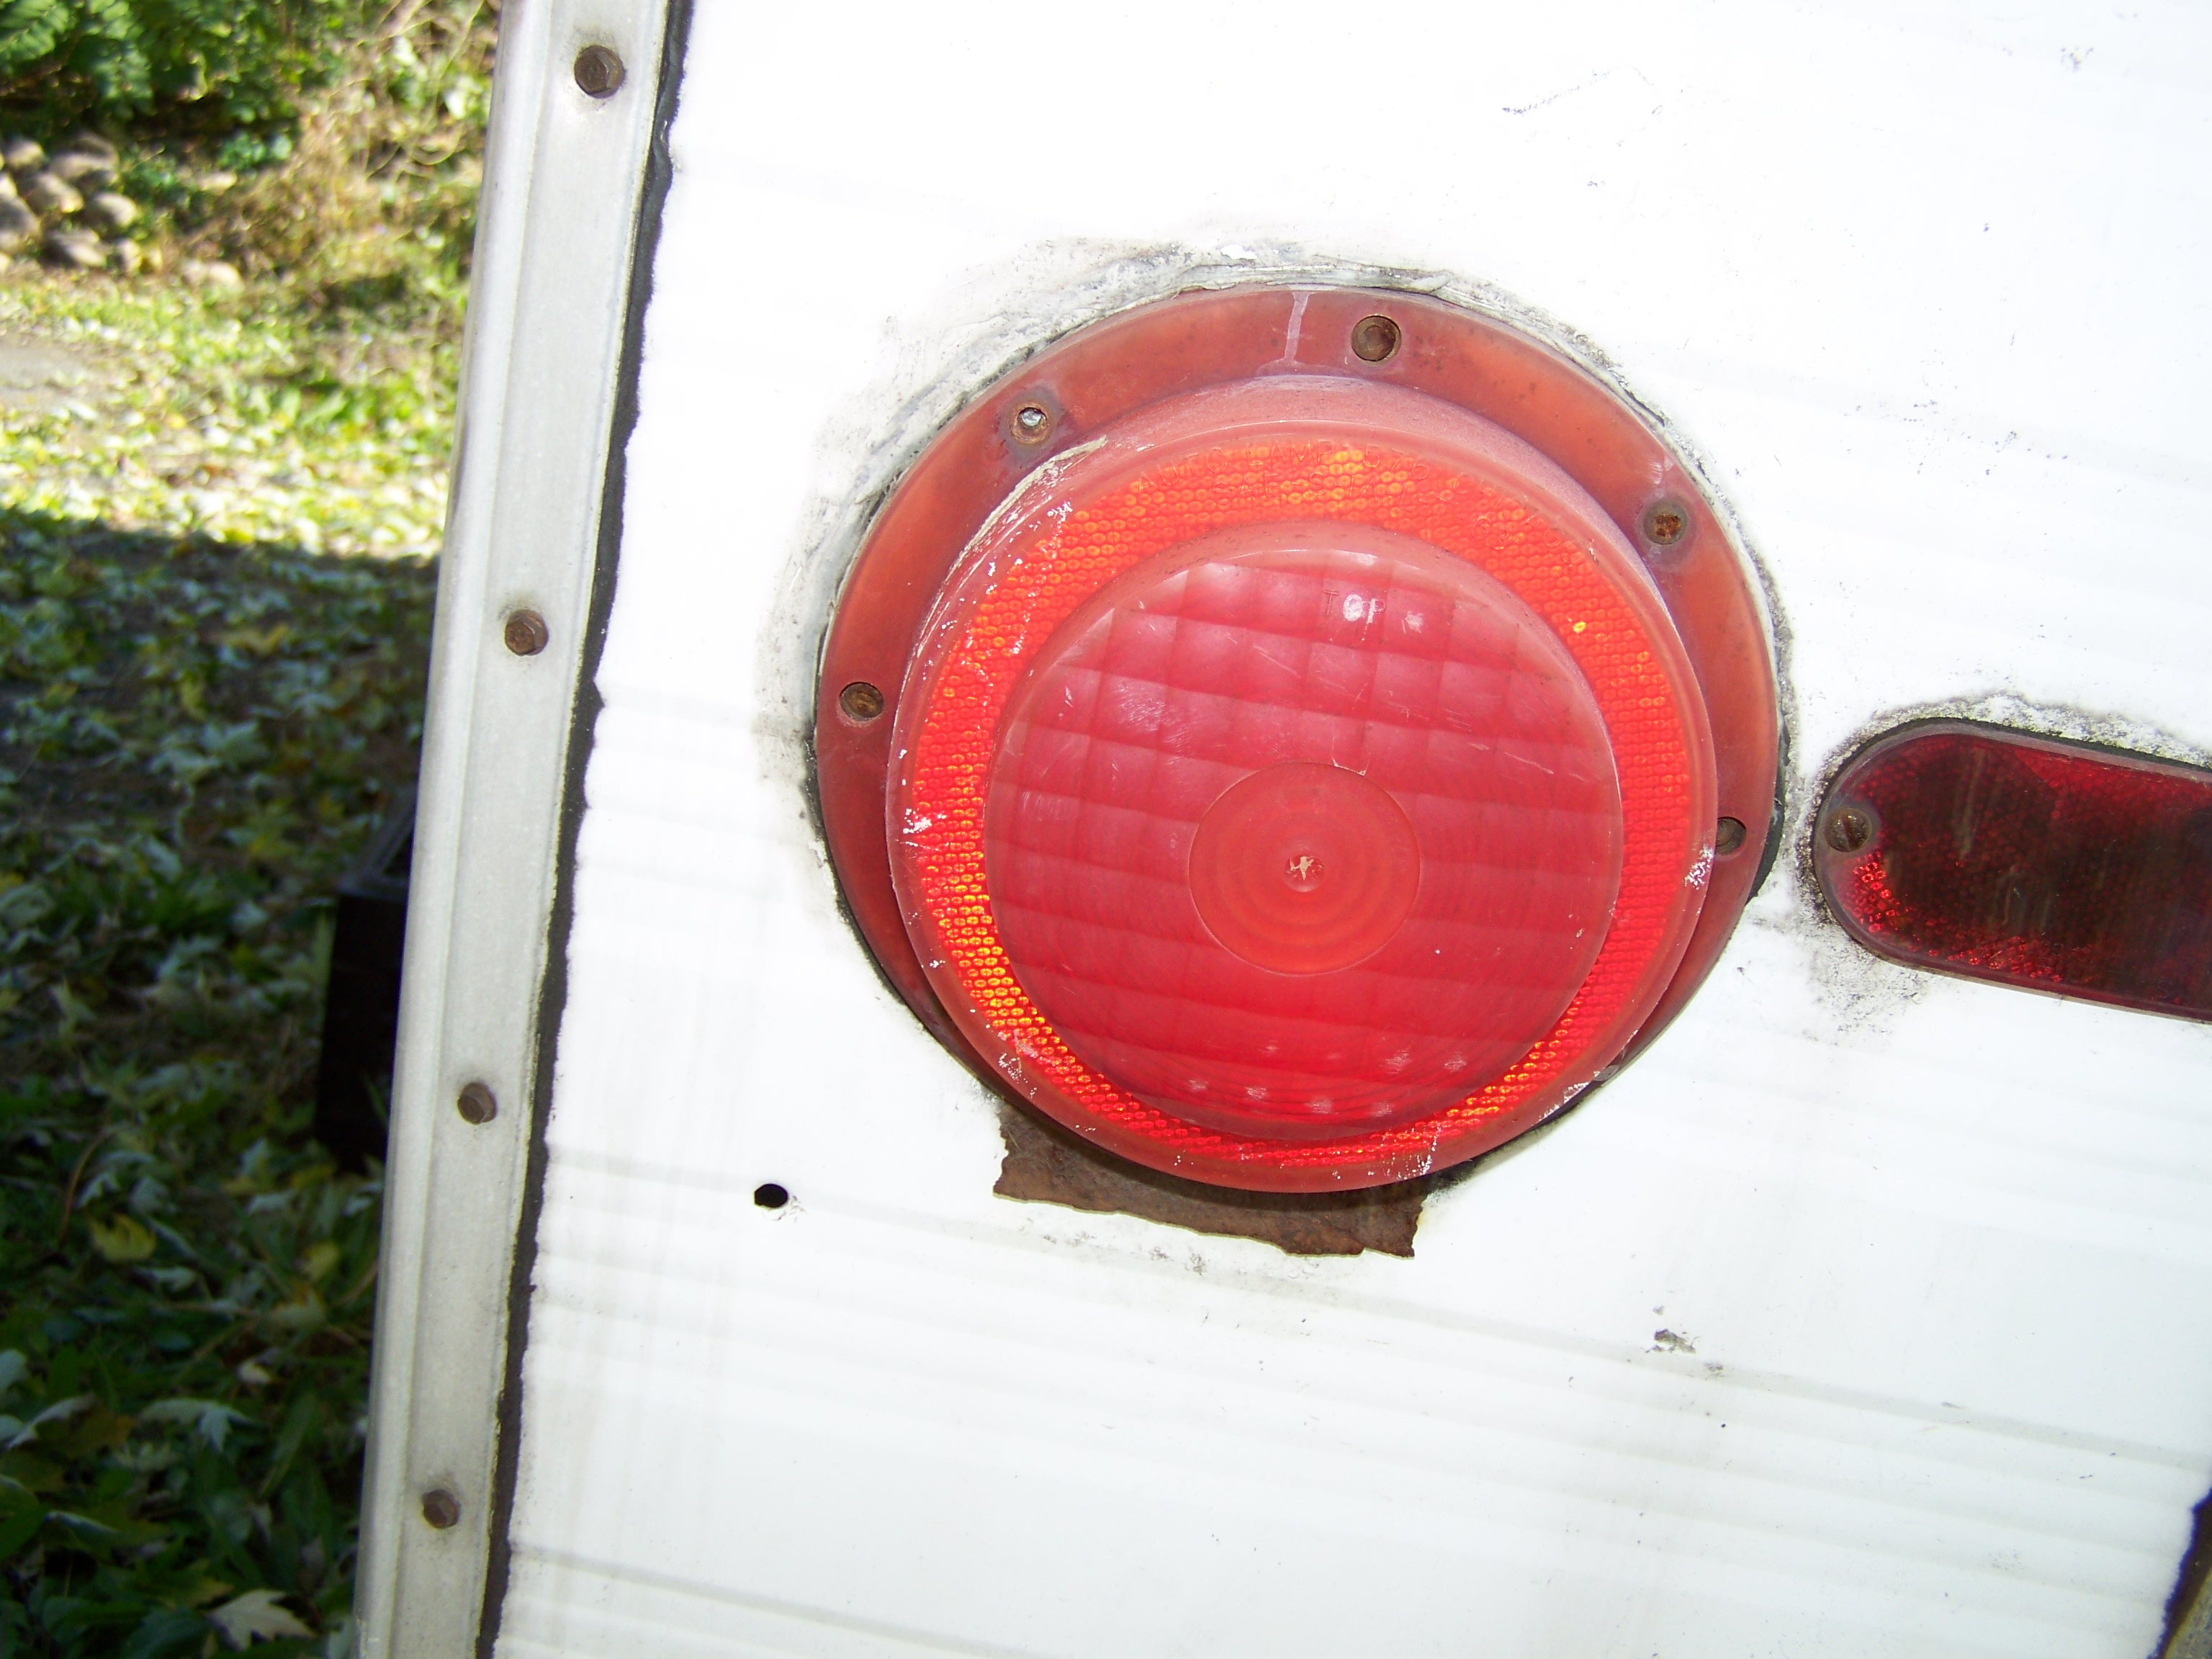 Model Camping Travel Trailer Stop Turn Tail And Back Up Lightwith License